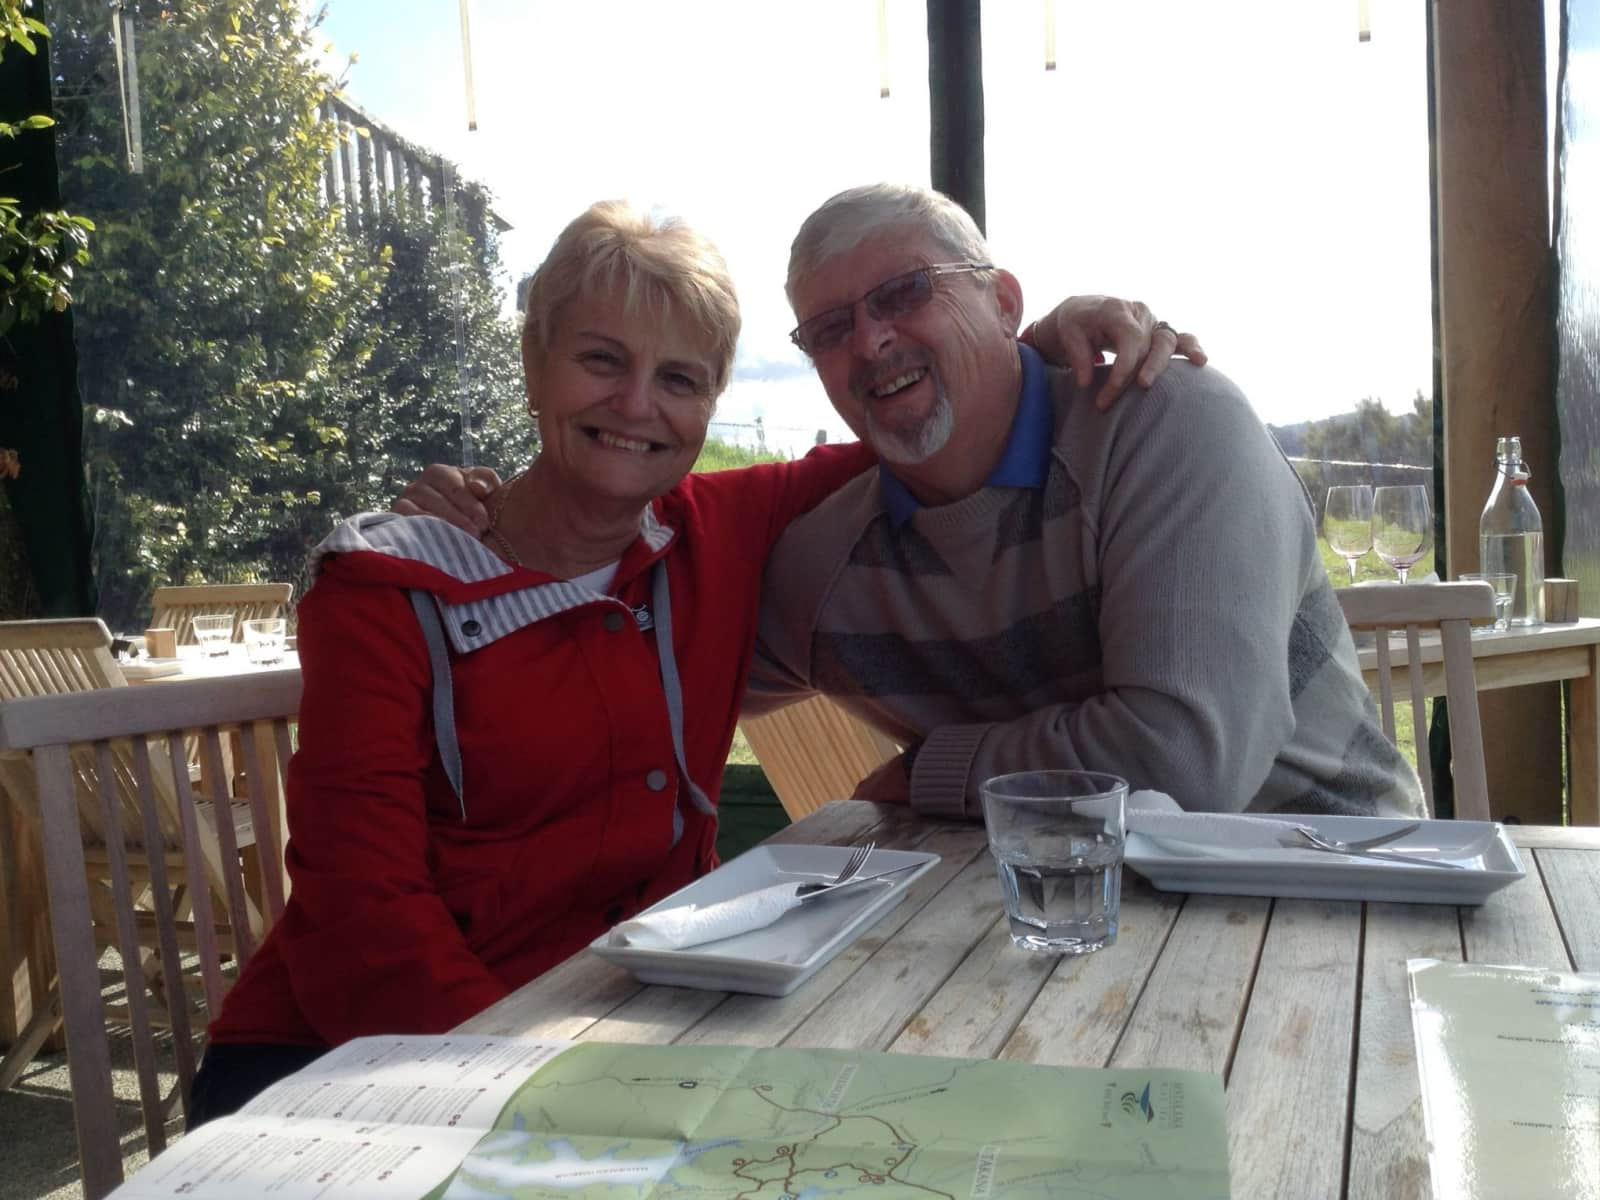 Mary & Michael from Newlands, New Zealand